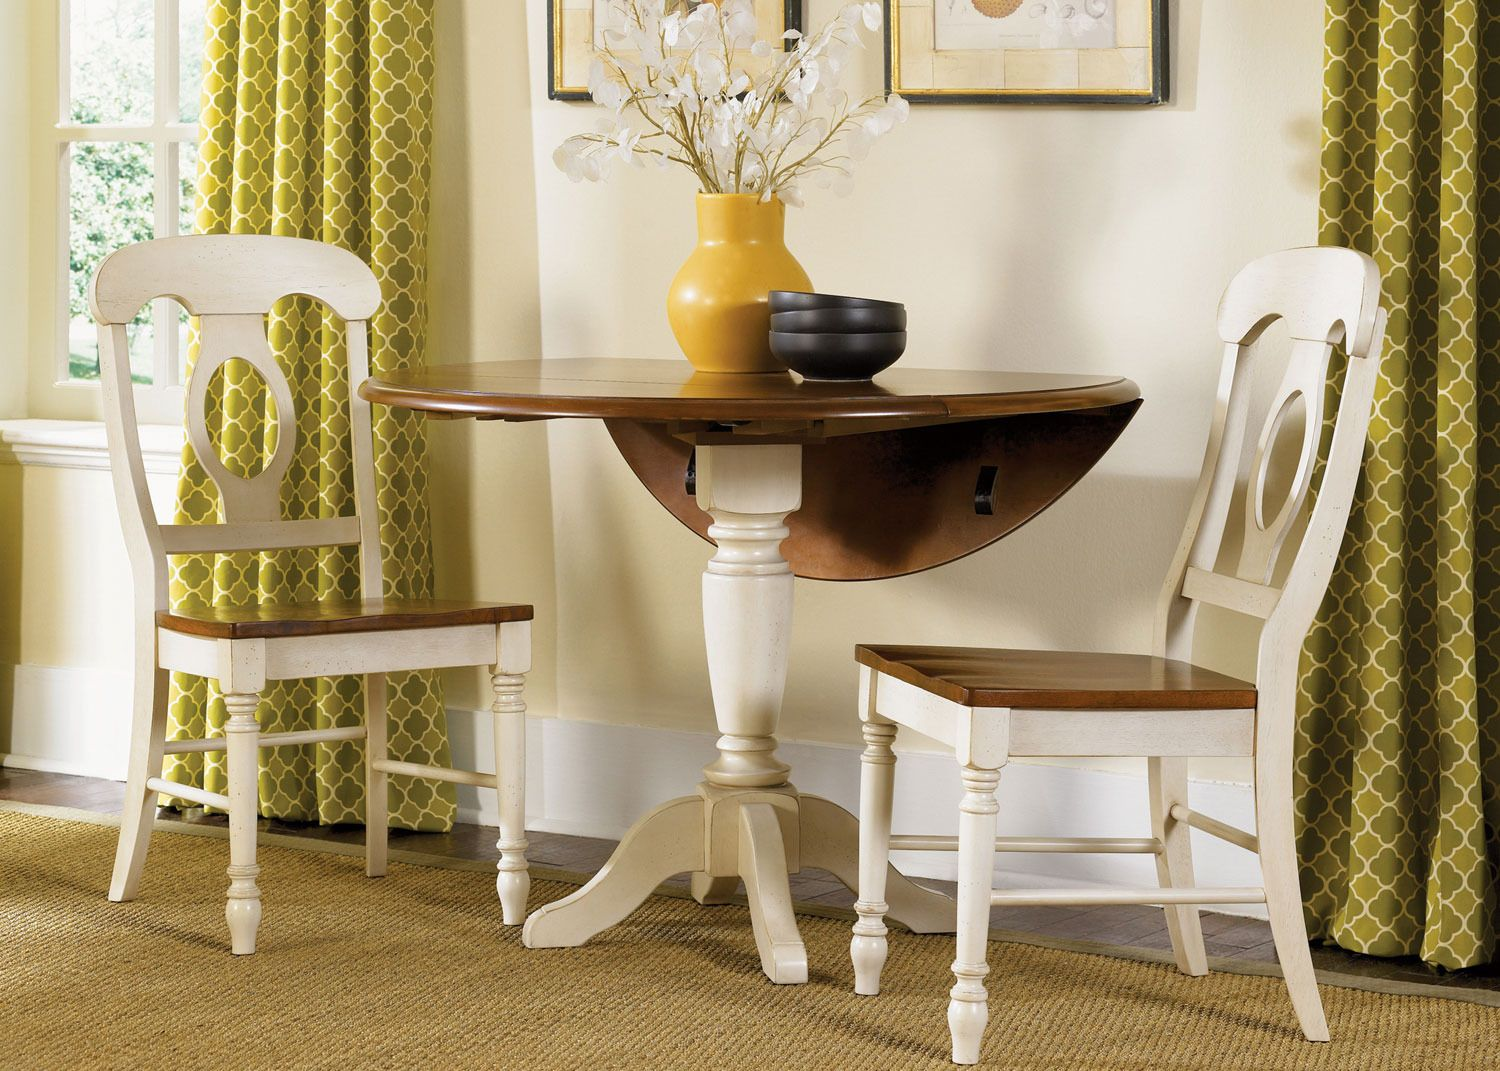 Merveilleux Low Country Round Drop Leaf Pedestal Dining Set | Liberty Furniture | Home  Gallery Stores